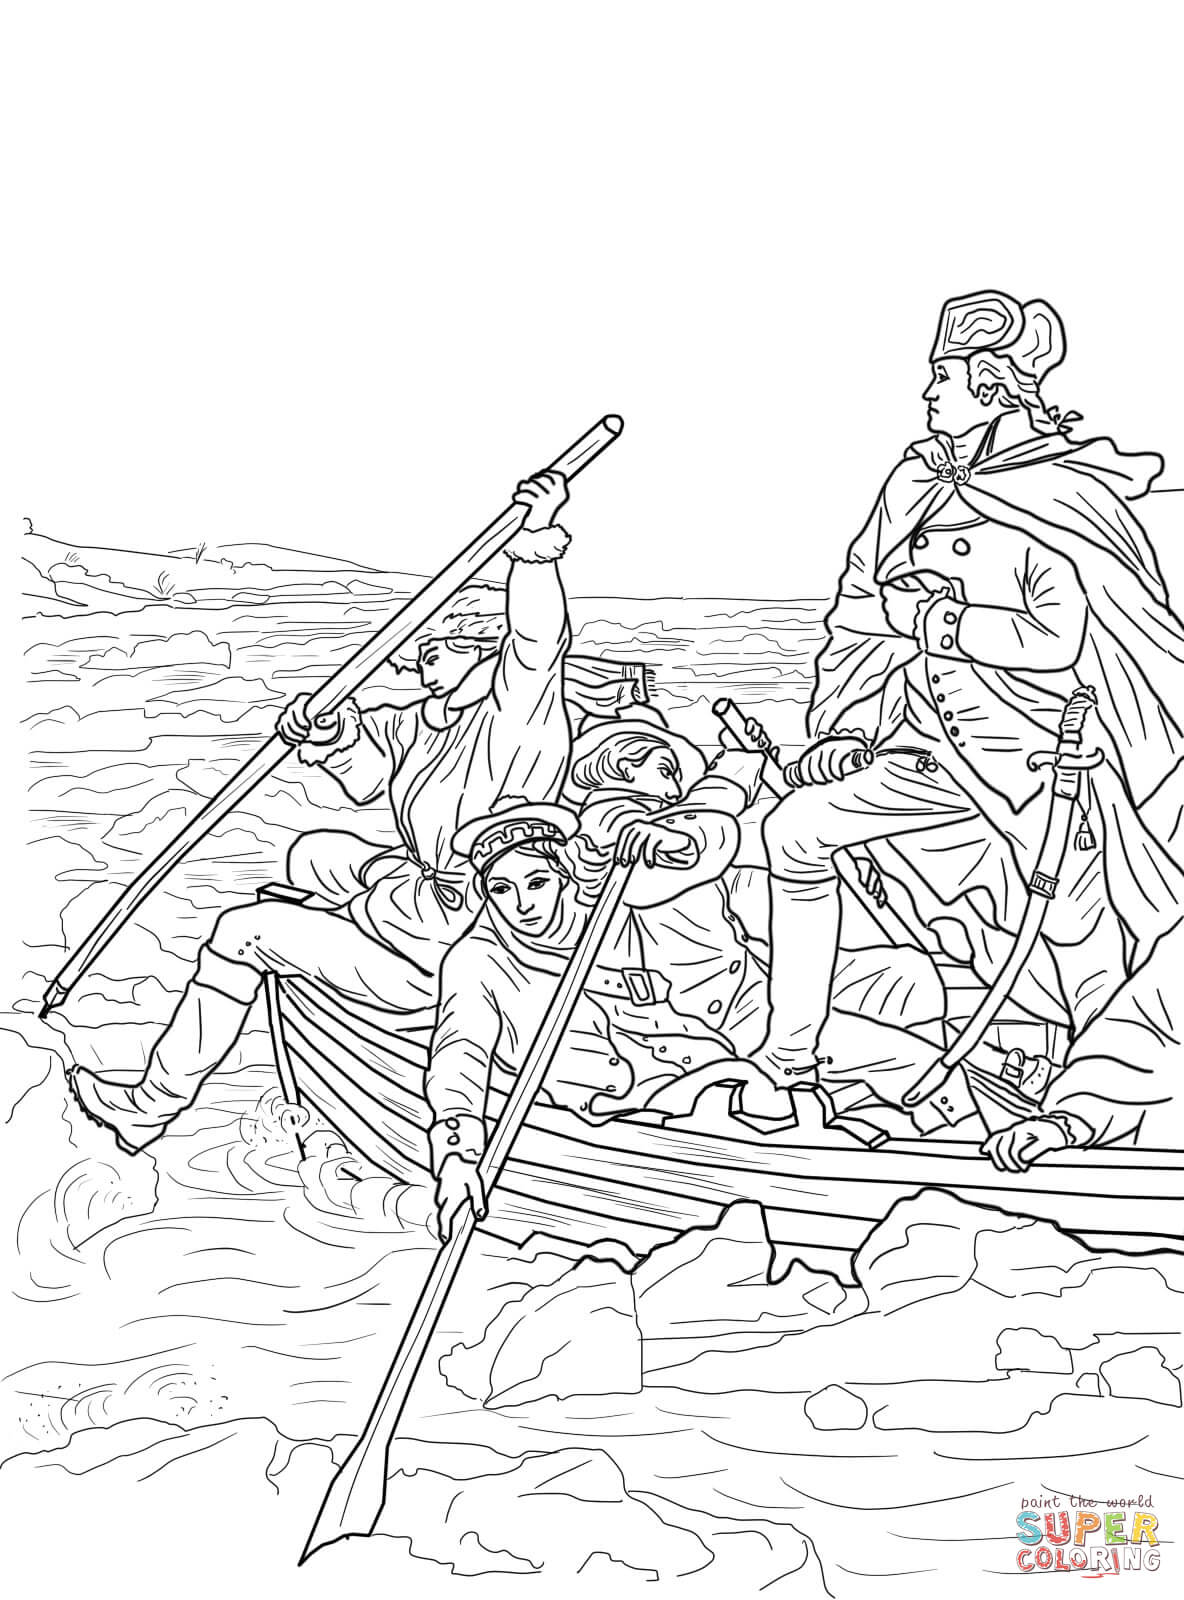 George Washington Coloring Pages Kids Home